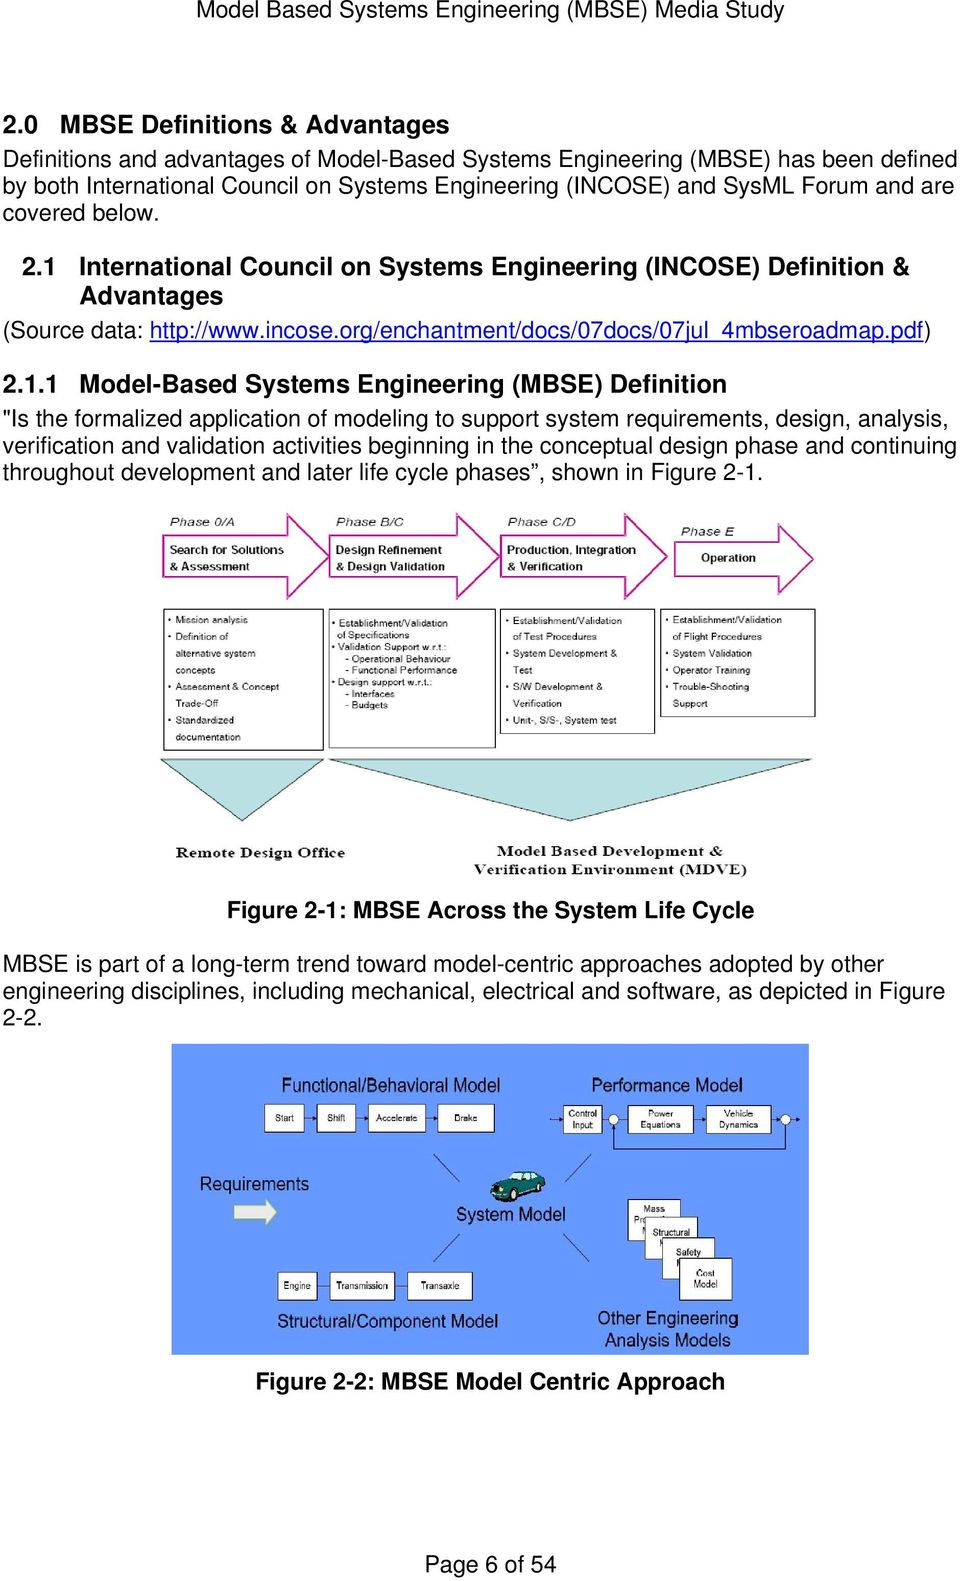 Model Based Systems Engineering Mbse Media Study Prepared By Julia Murray Pdf Free Download